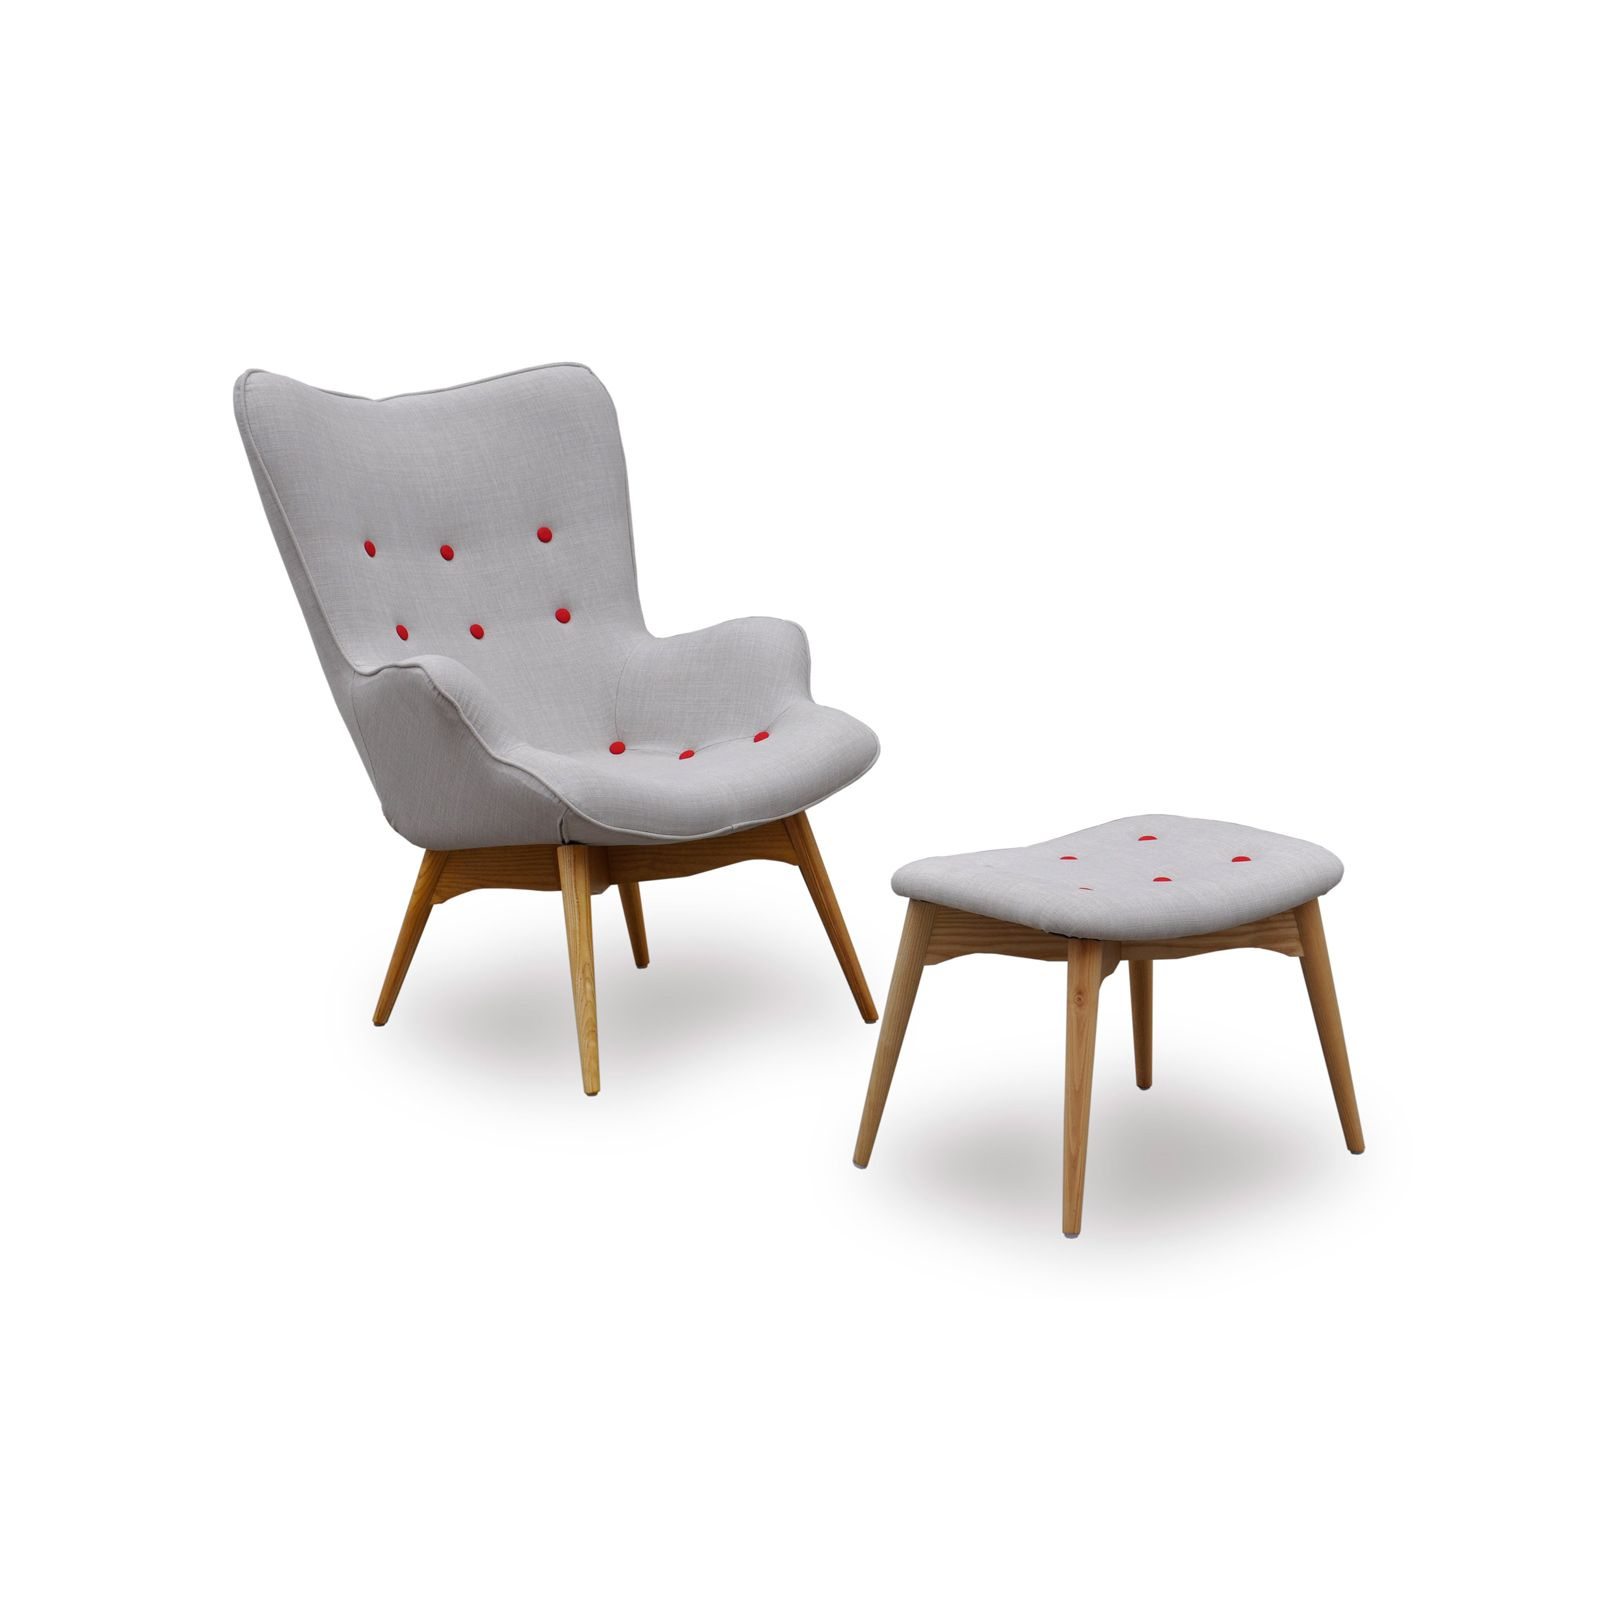 Paddington Chair and Ottoman Set with Red Buttons | dotandbo.com ...